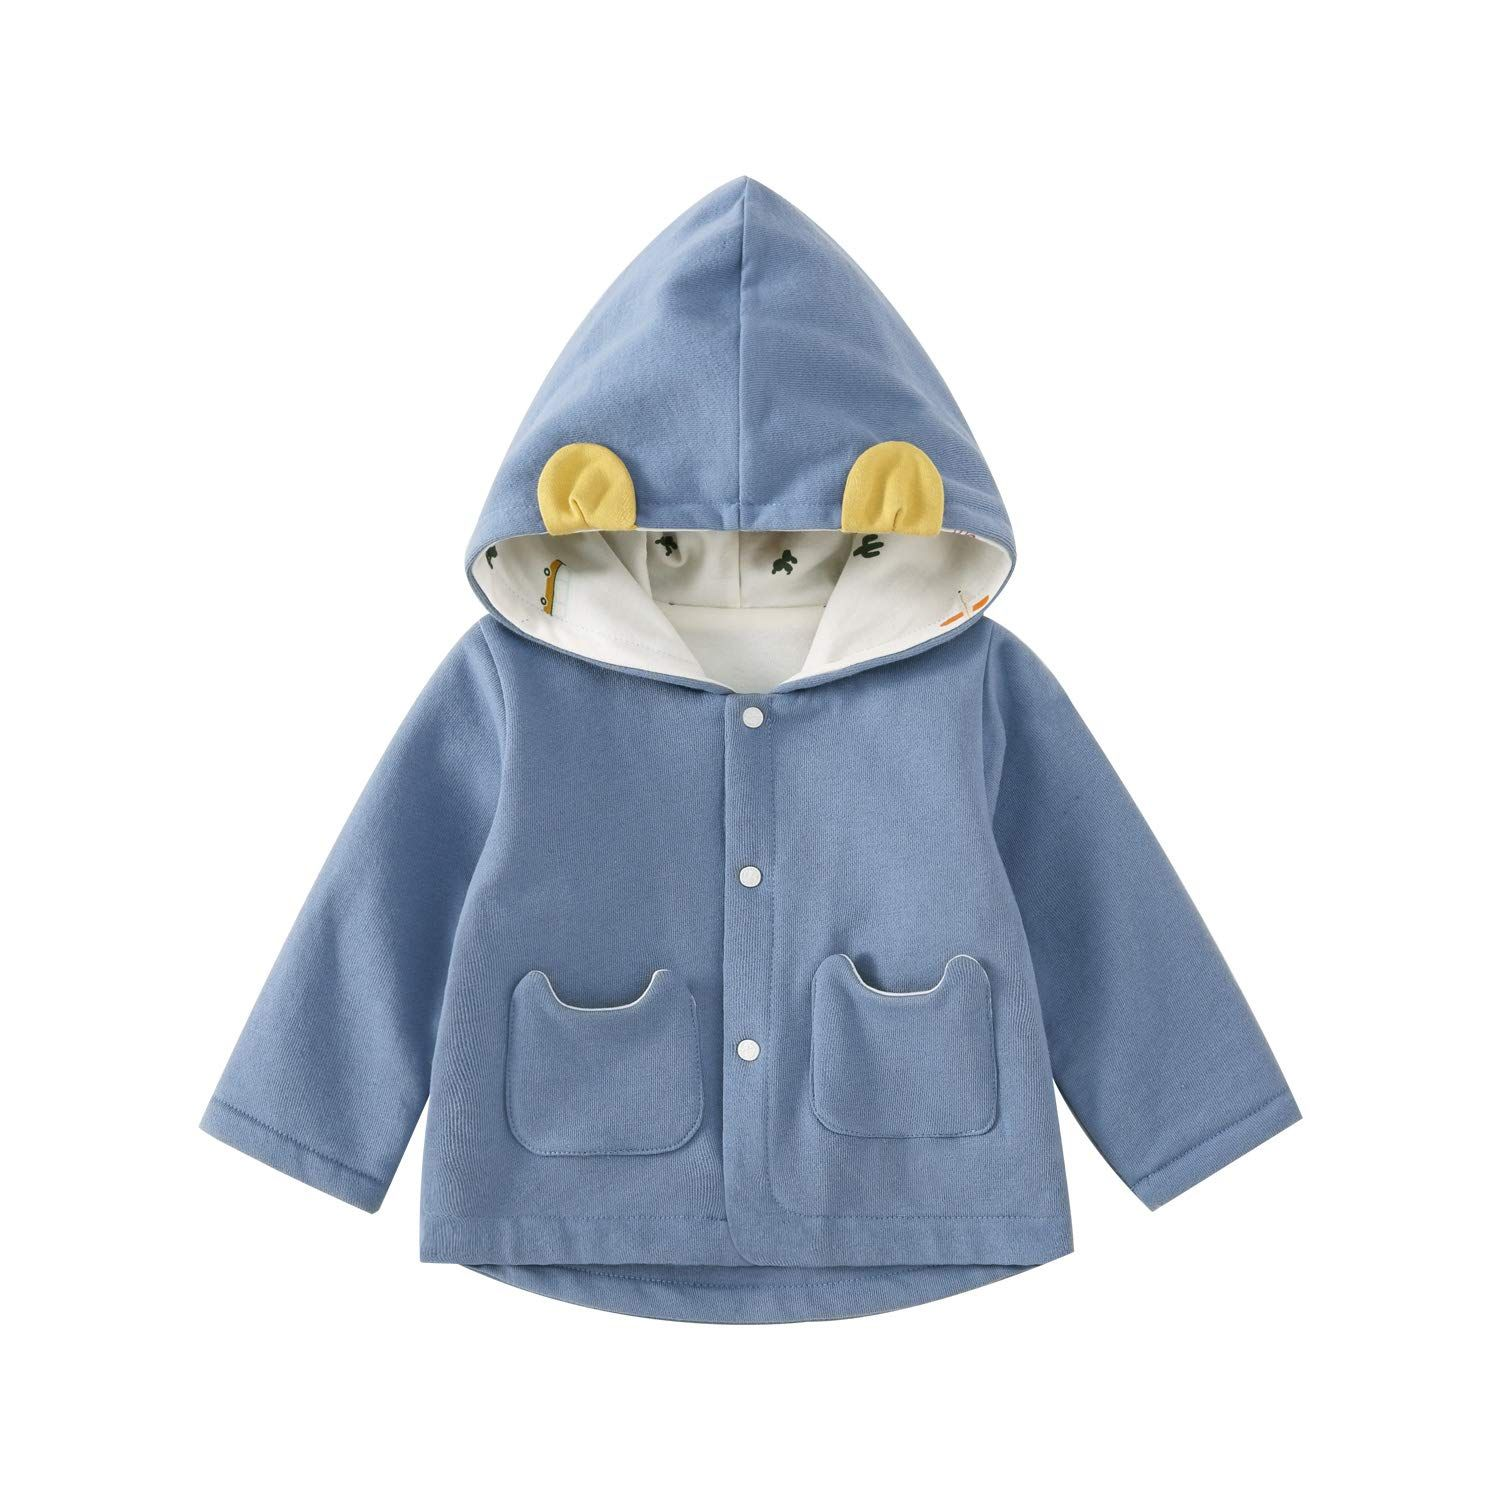 Pureborn Infant Baby Boy Cotton Lined Hooded Ears Jacket Spring Autumn Outfit Blue 6 12 Months Make Certai In 2020 Baby Girl Jackets Baby Boy Jackets Autumn Outfit